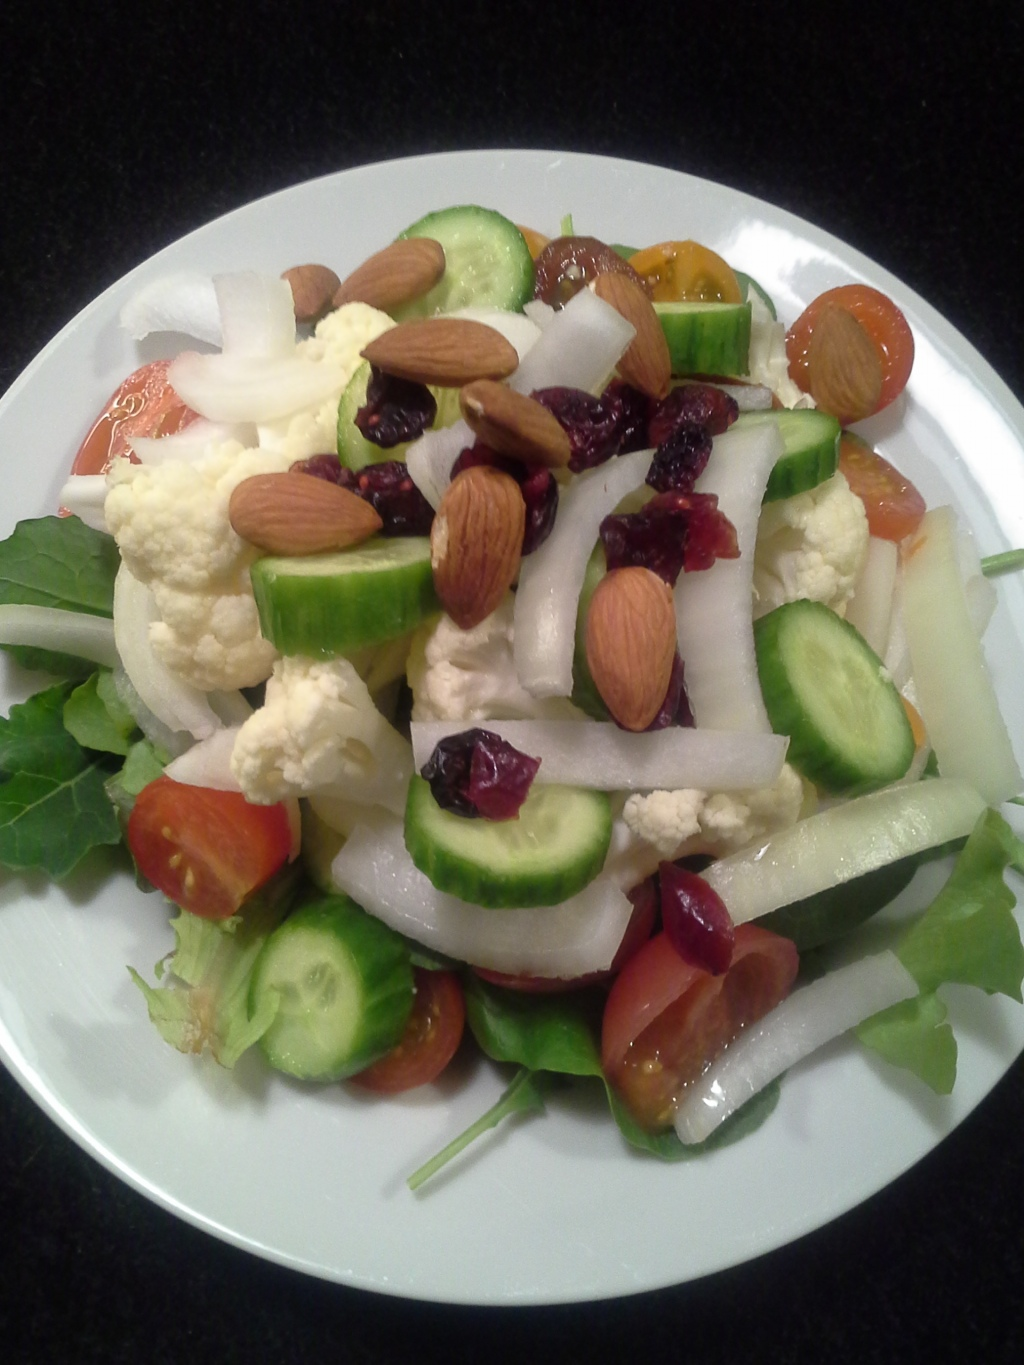 I add cucumbers to salads or eat them with hummus for a nutritious, hydrating snack.